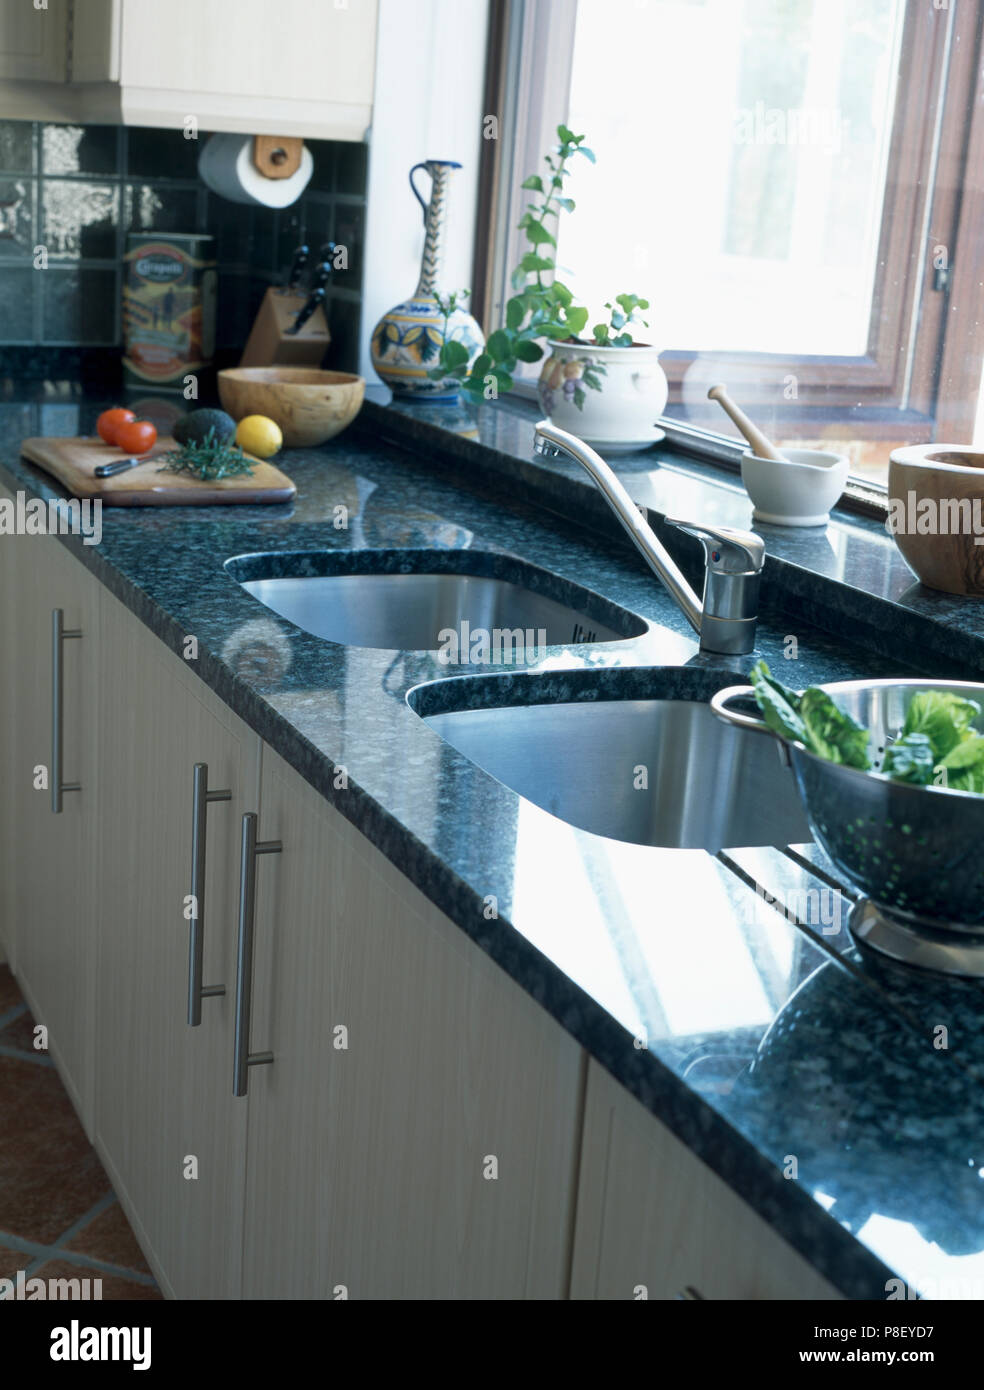 Double Sinks In Modern Kitchen With Granite Worktop Stock Photo Alamy